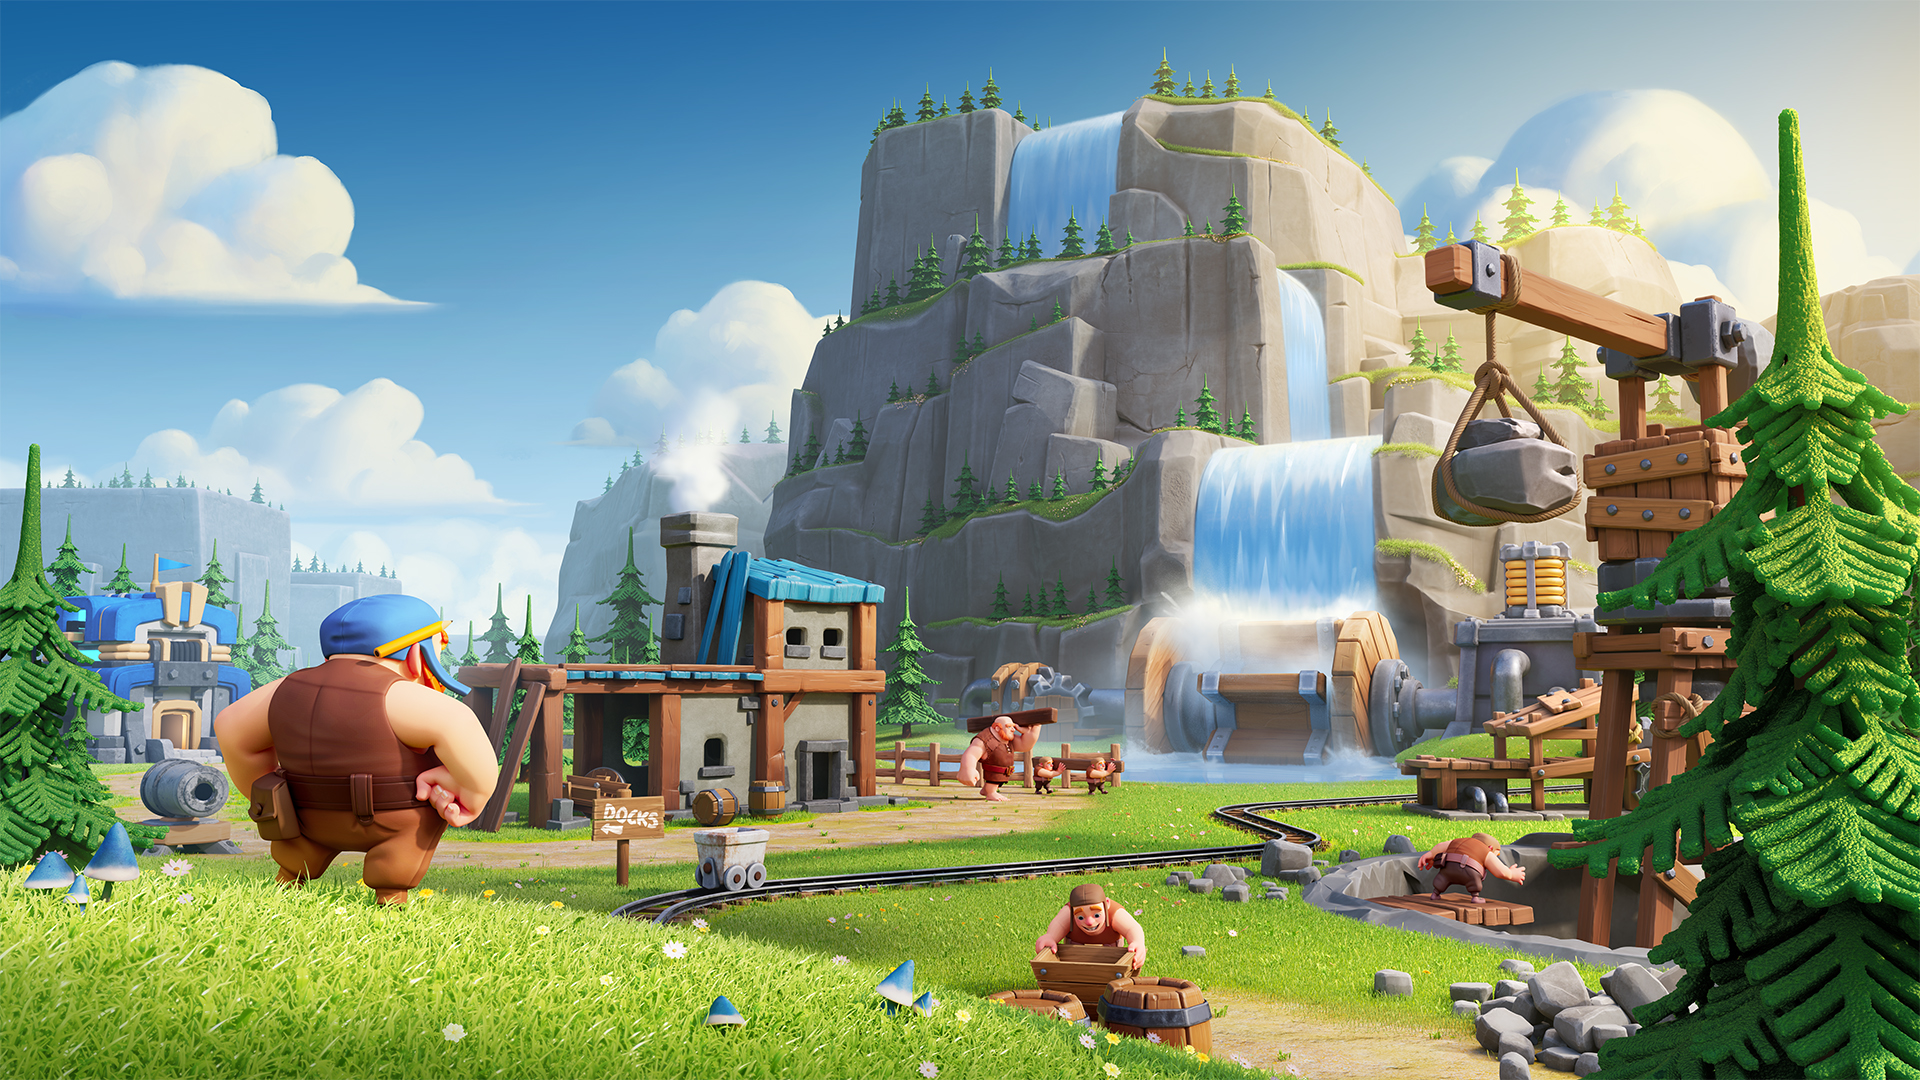 Clash Of Clans On Twitter How Do You Like The New Custom Village Background Chief Clashy Constructs Scenery Bundle Is A Limited Time Offer Find It In The Shop While